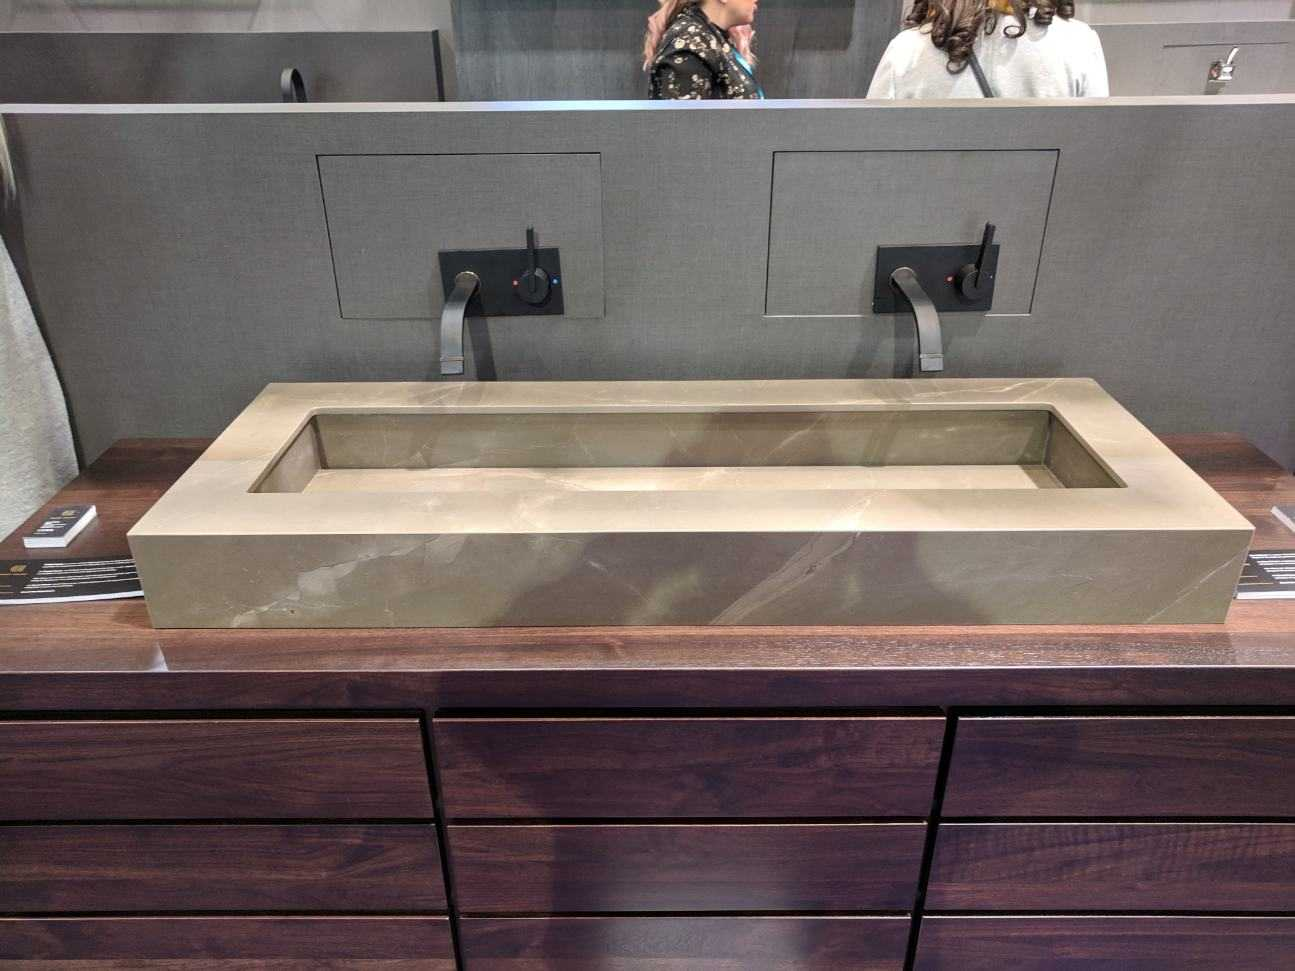 KBIS Booth